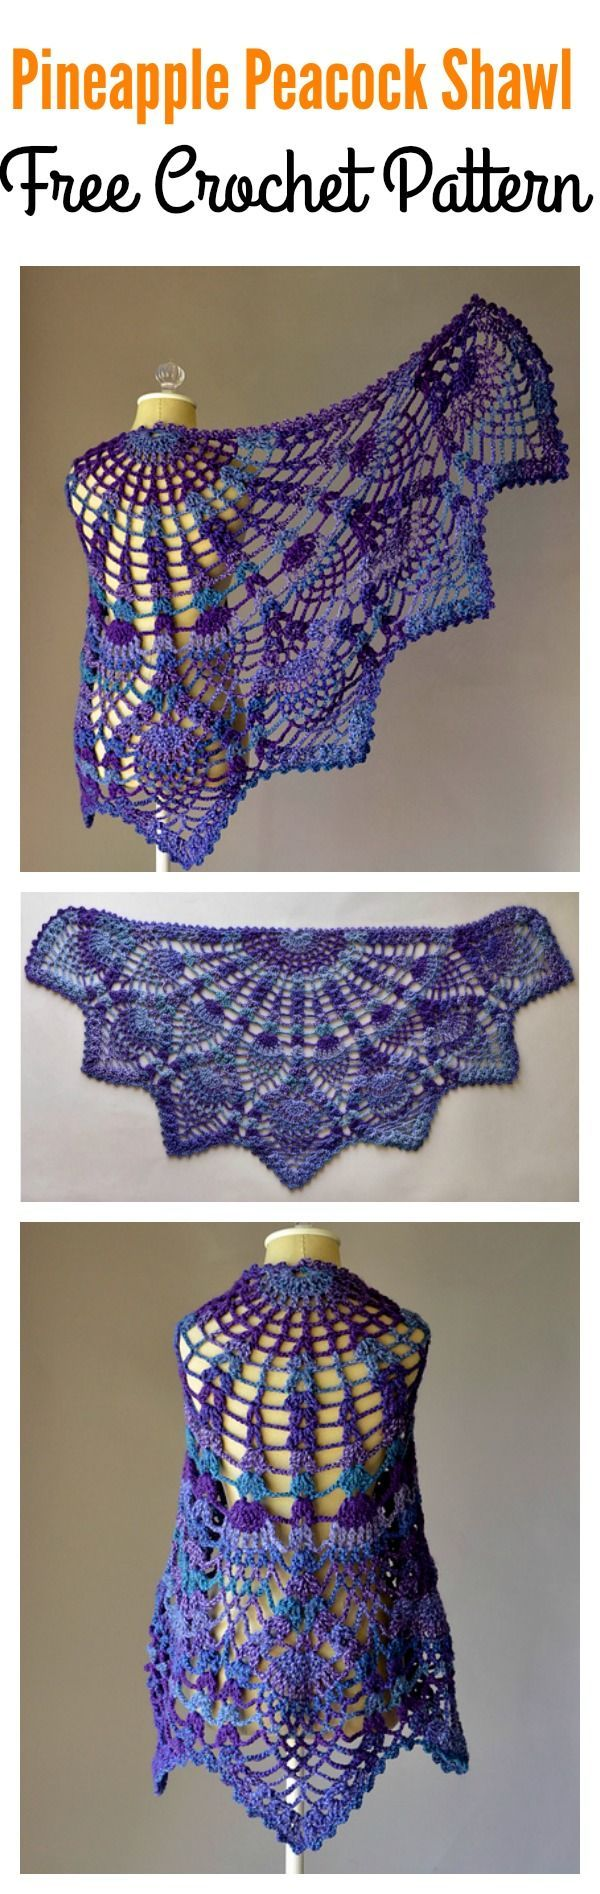 Pineapple Peacock Shawl Free Crochet Pattern - The gorgeous drape of this lace design is perfect for spring or a winter getaway